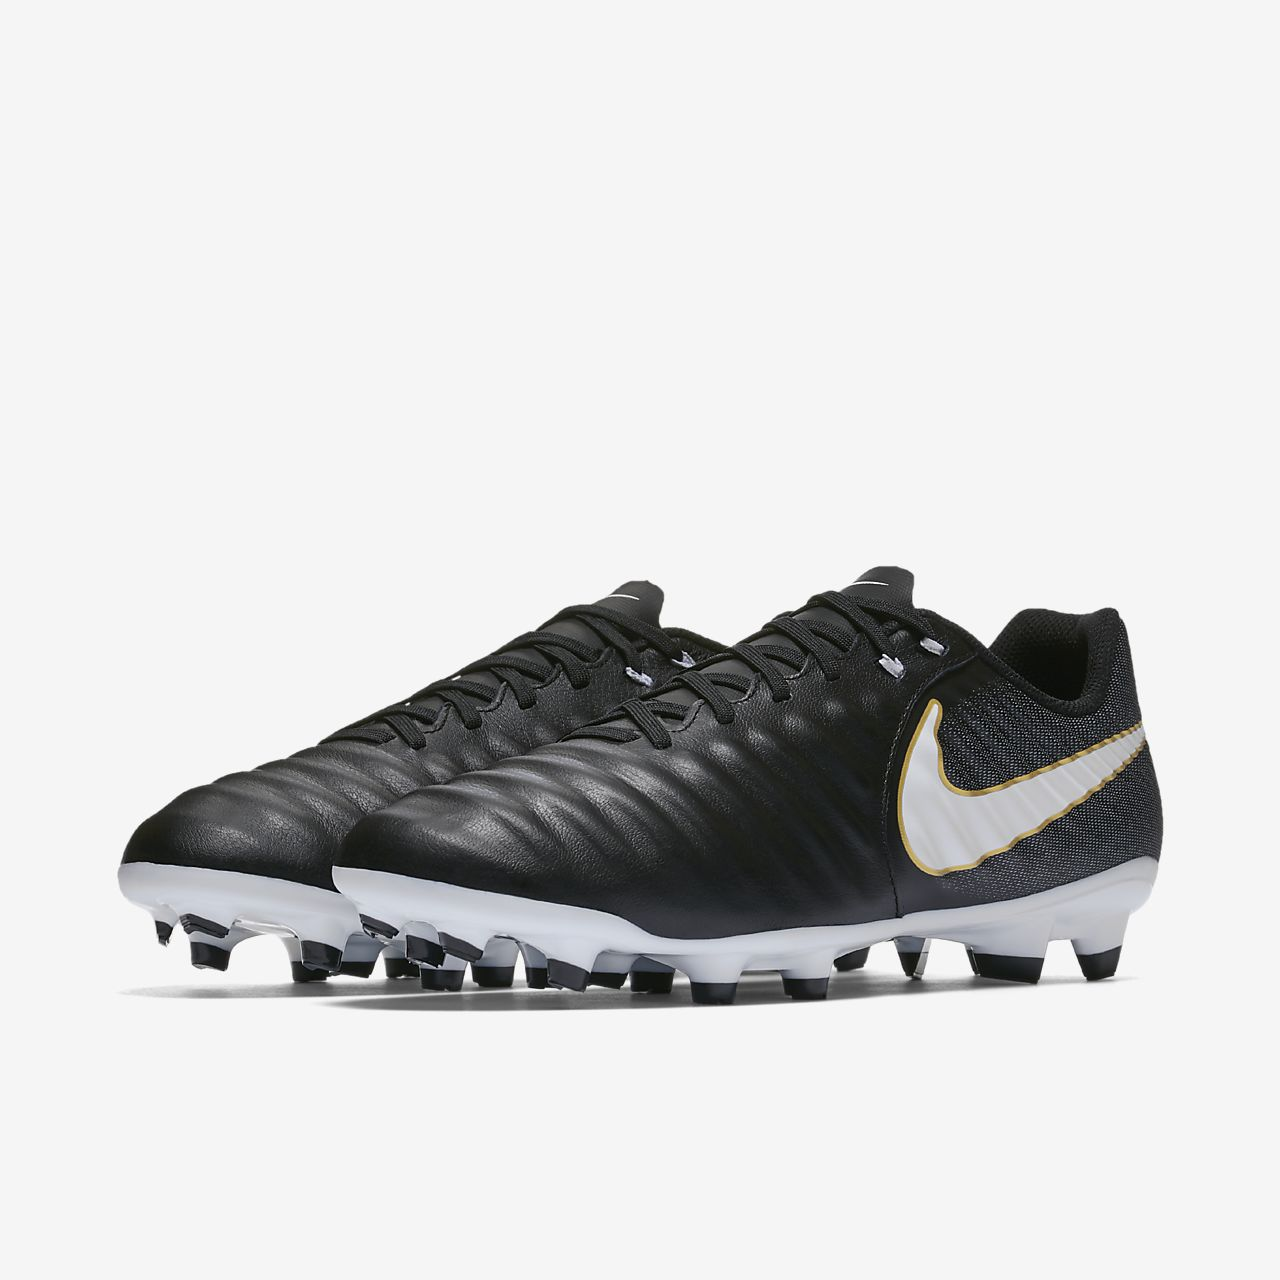 Nike Tiempo Ligera IV Firm-Ground Men's Football Boots Blue/White bR8307N